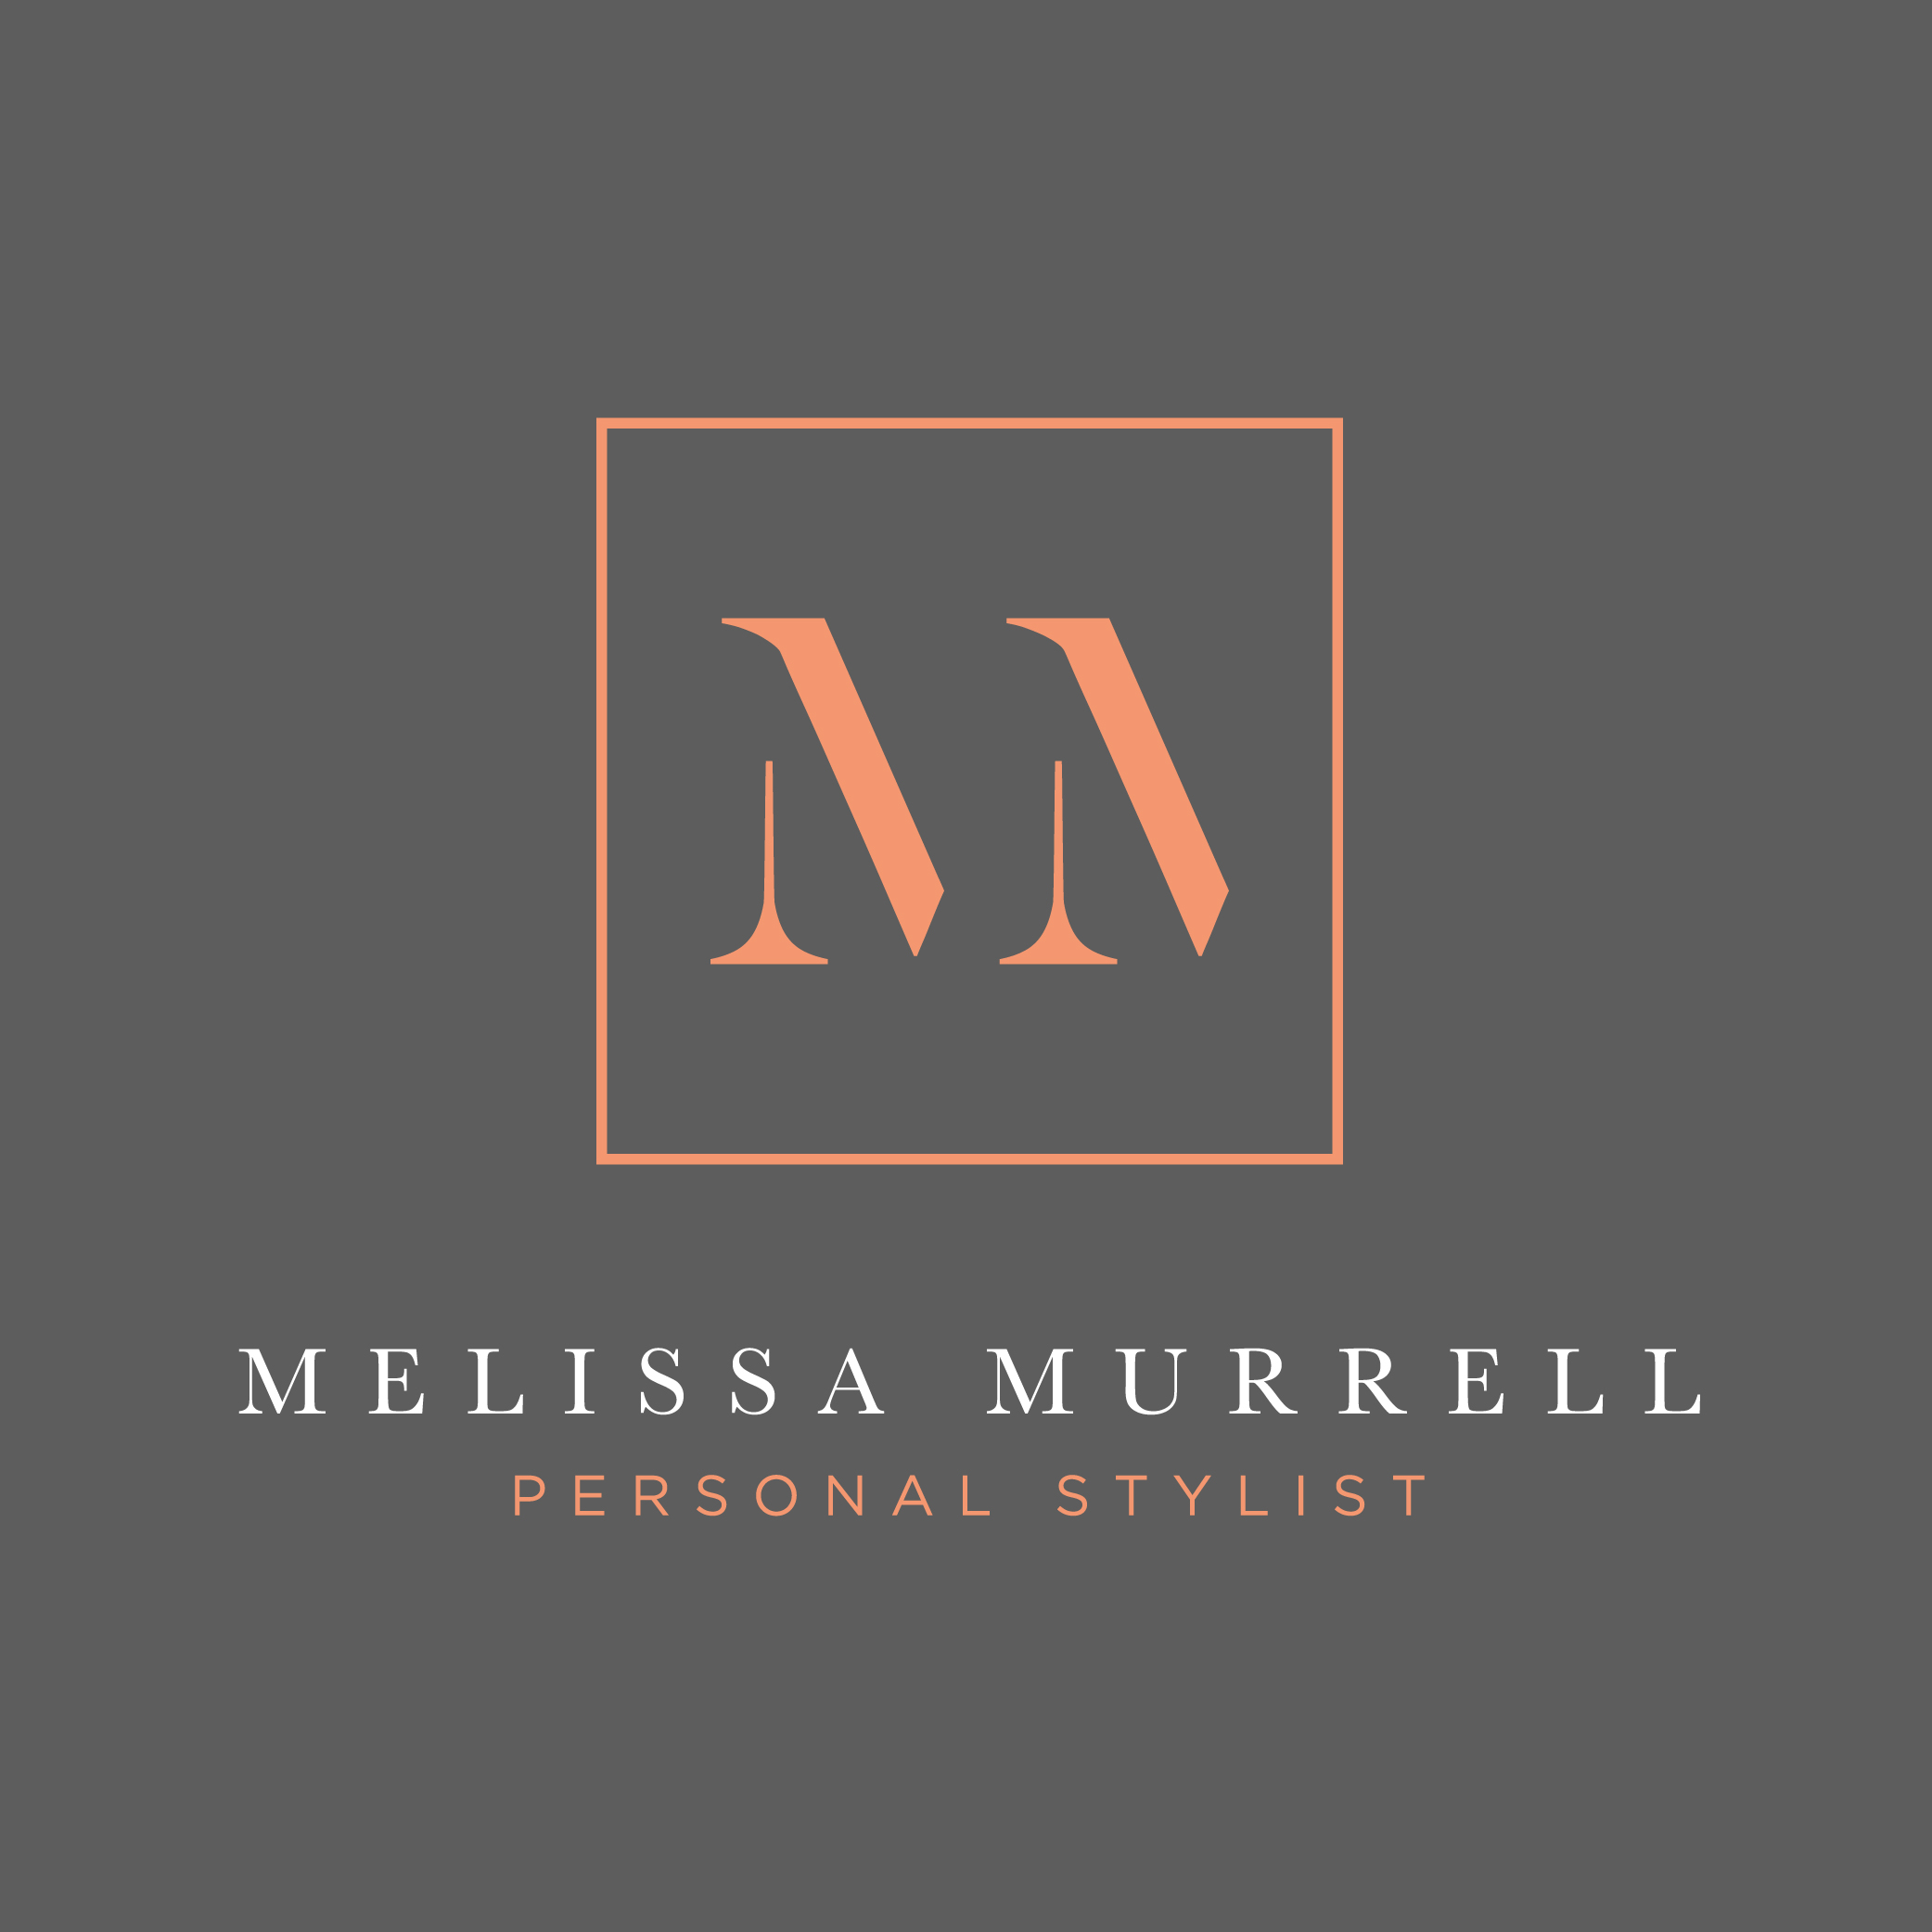 MM Personal Styling Grey logo